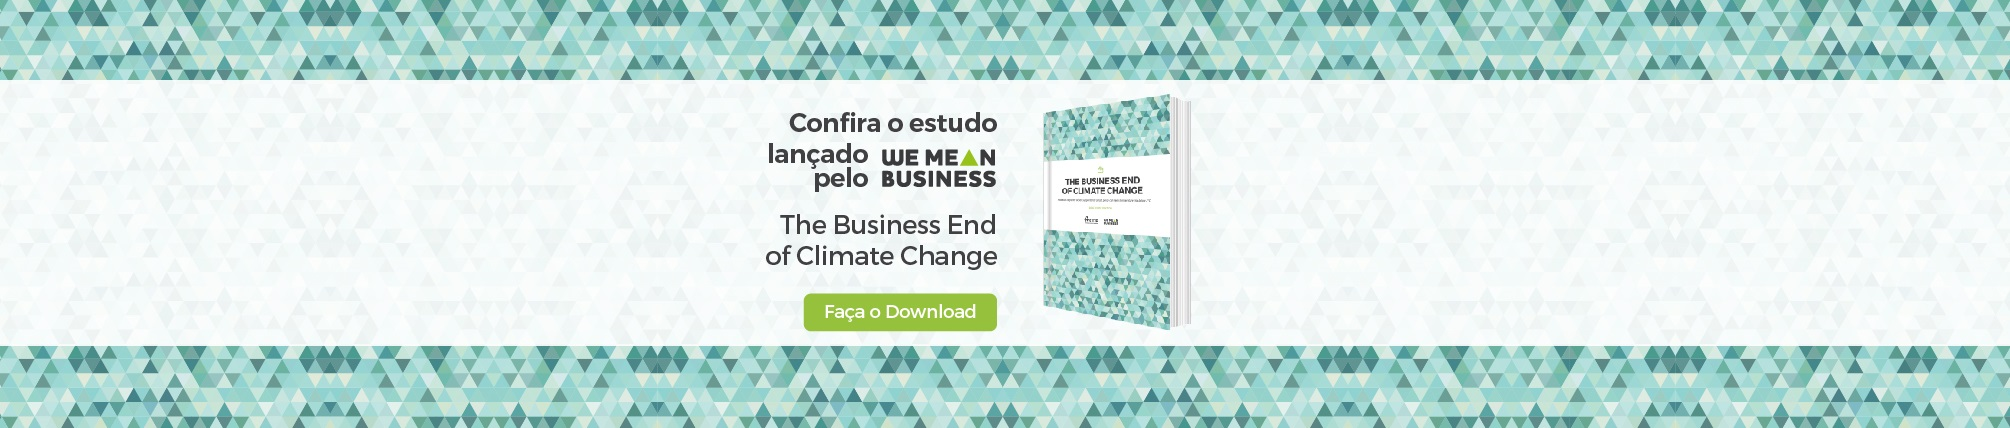 the-business-end-of-climate-change-pt-01